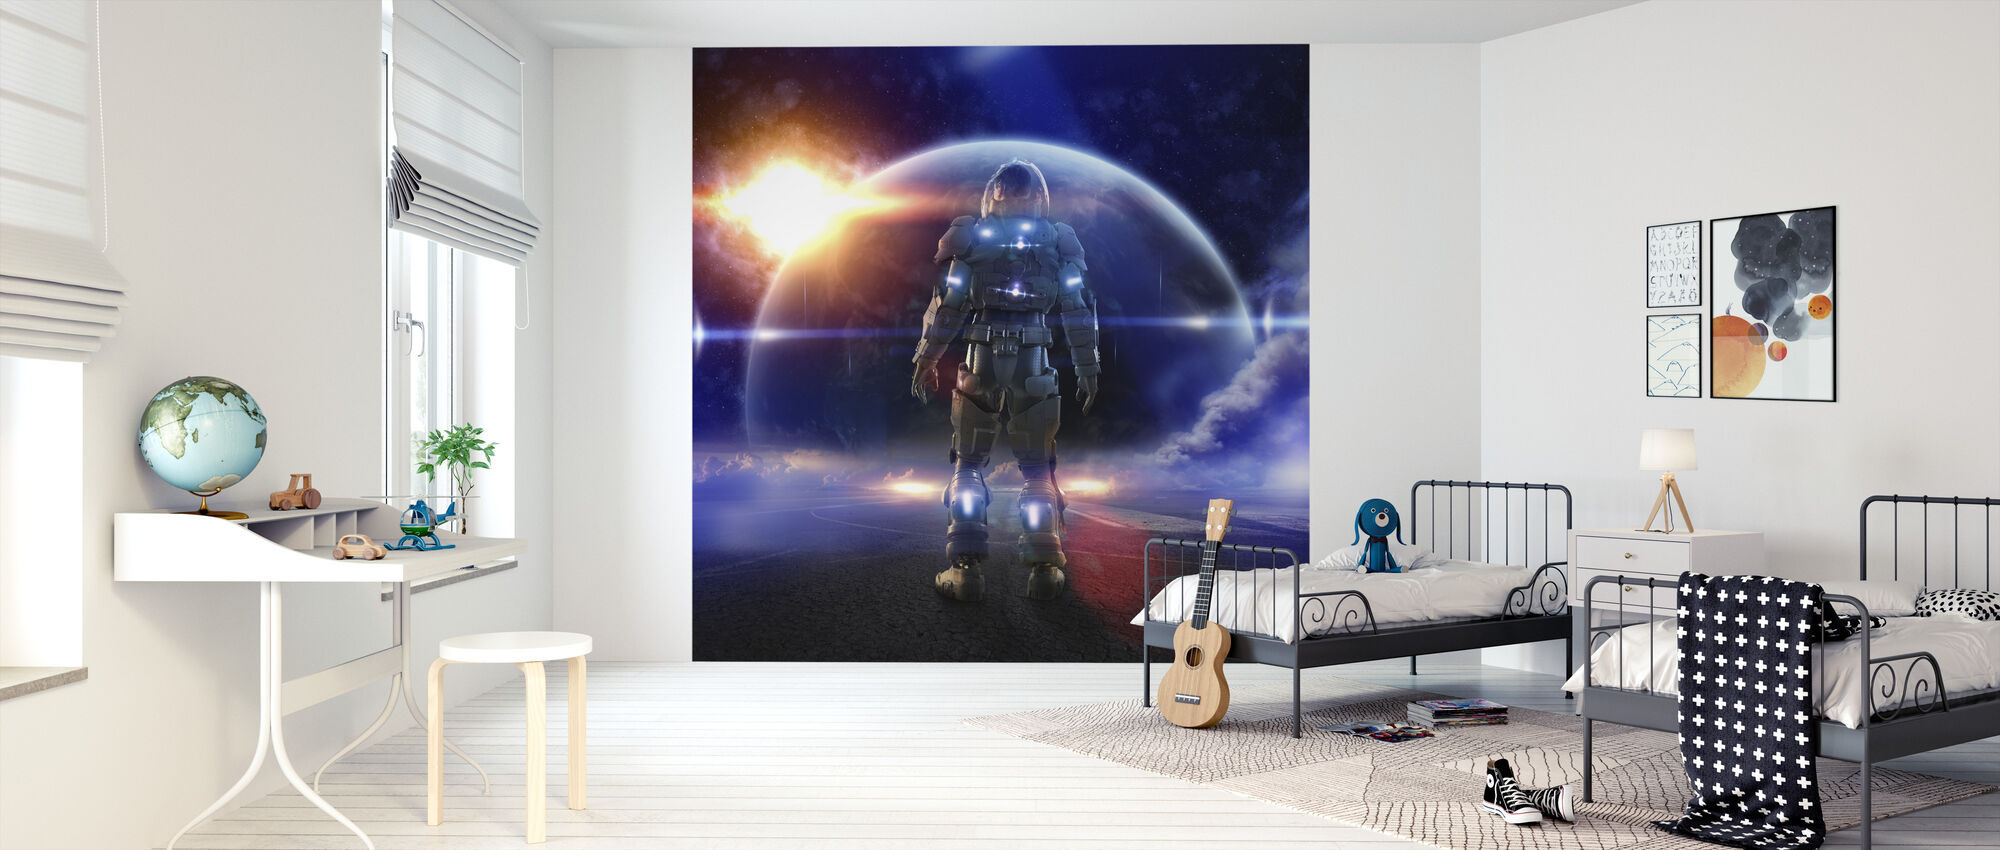 Space Knight - Wallpaper - Kids Room